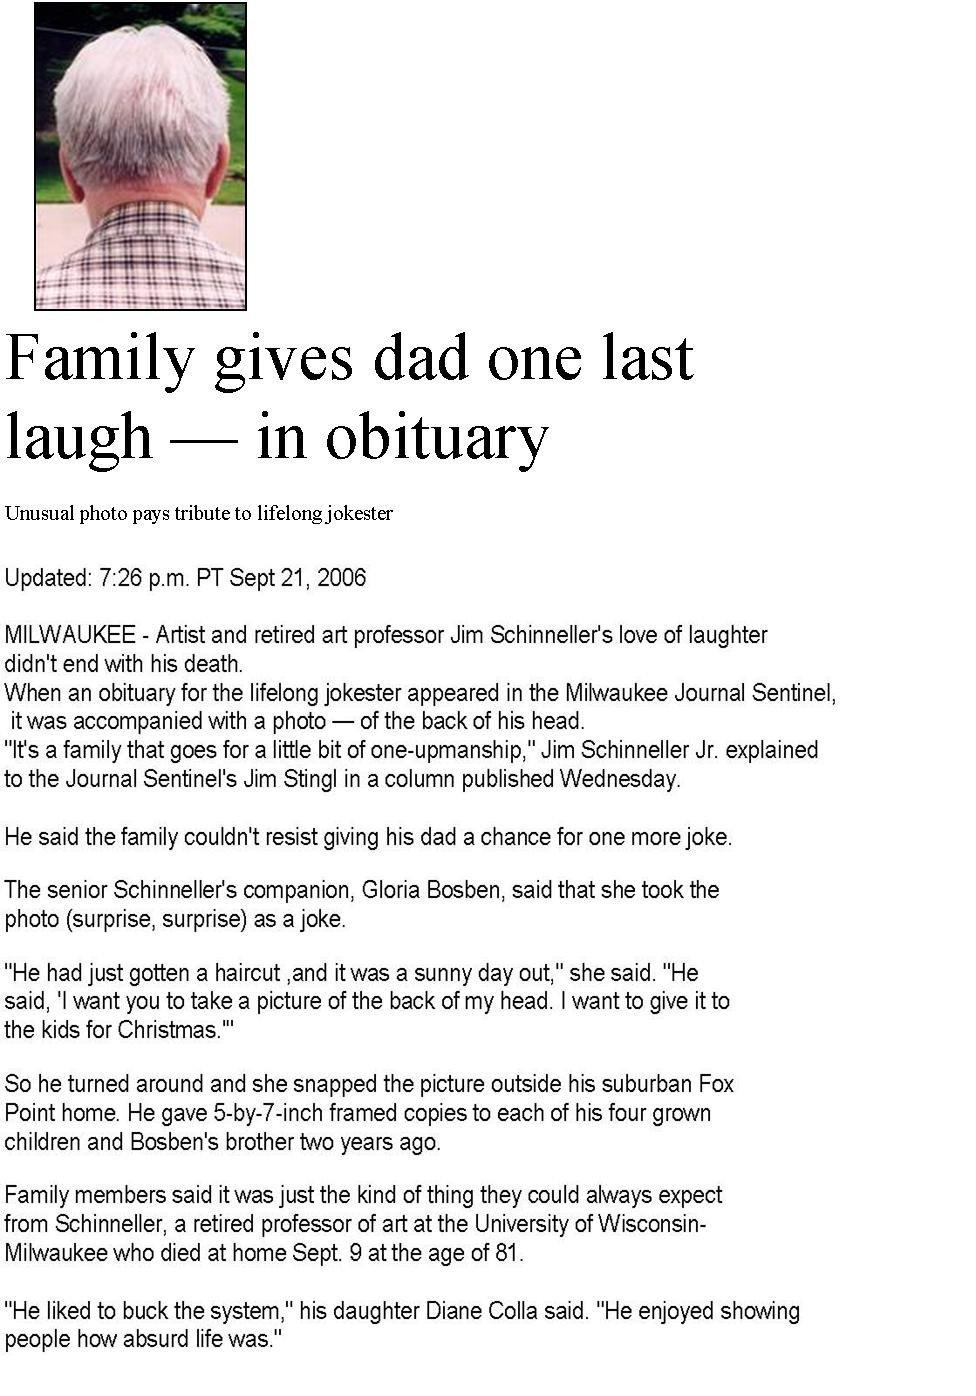 Writing An Obituary Template Obituary Examples Sample Obituary Make It Unique with